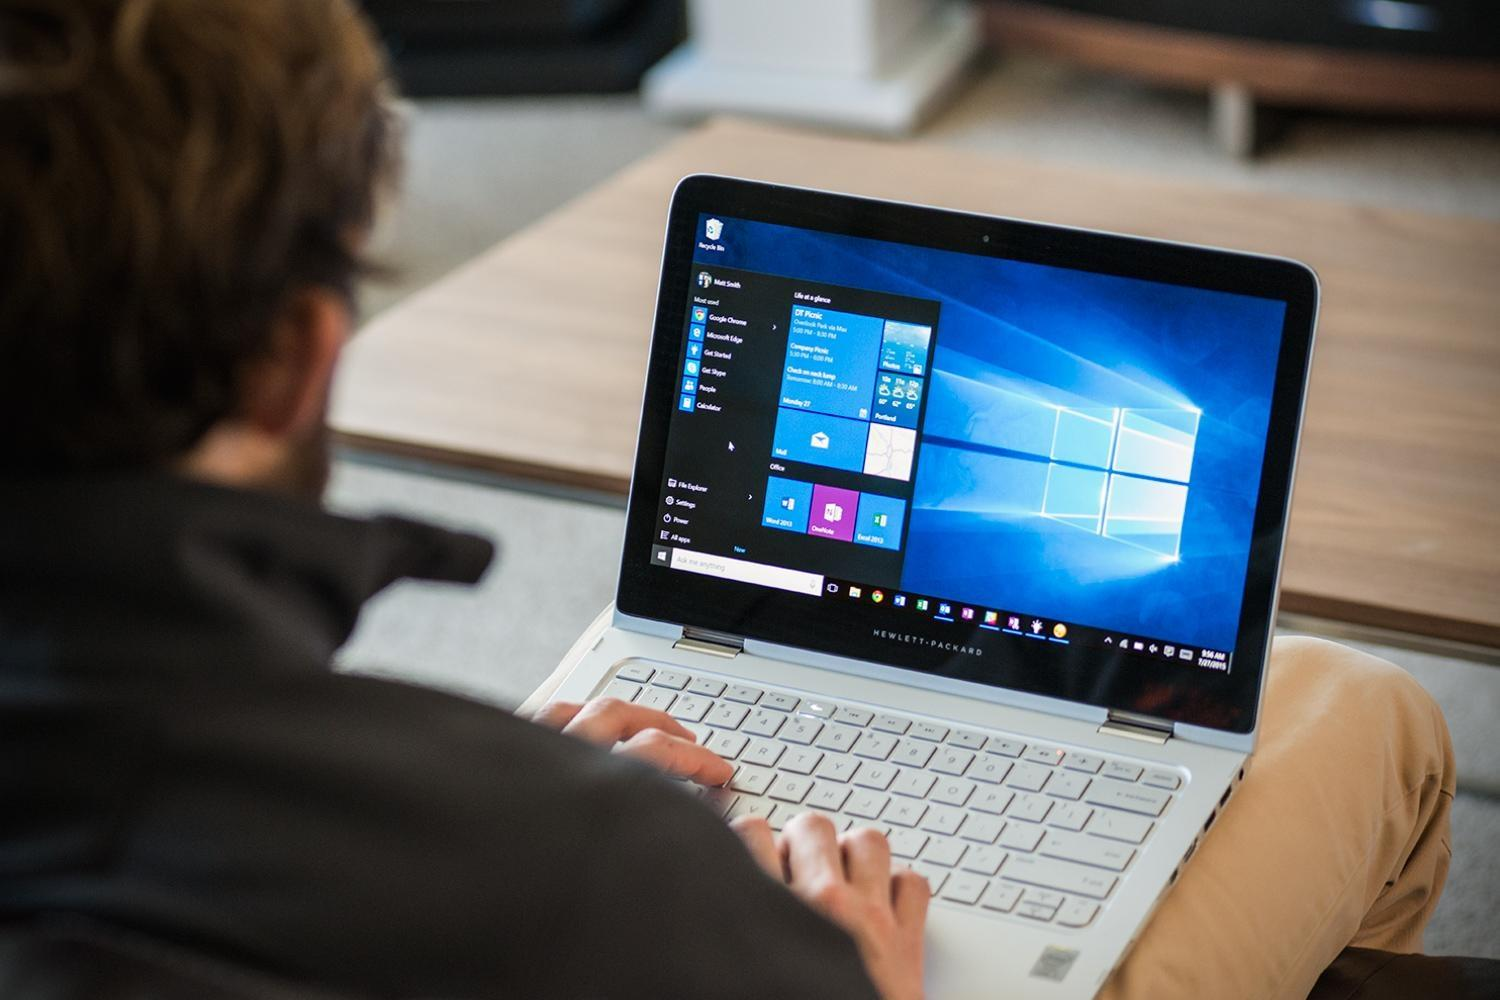 How to download a Windows 10 ISO file legally, and install Windows 10 from it